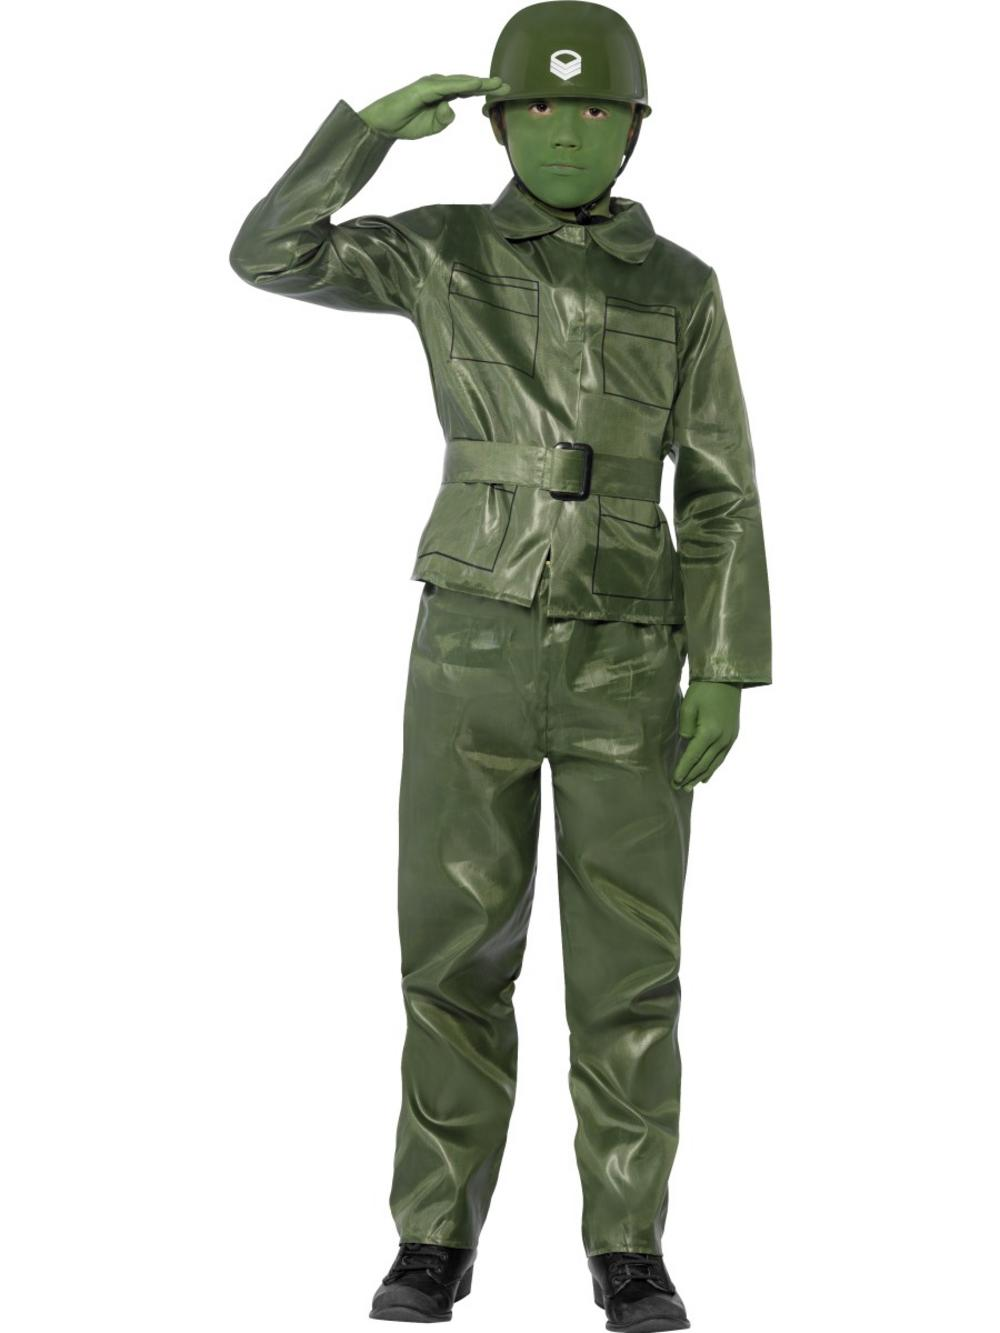 Toy Soldiers For Boys : Toy soldier boys costume boy s world book day fancy